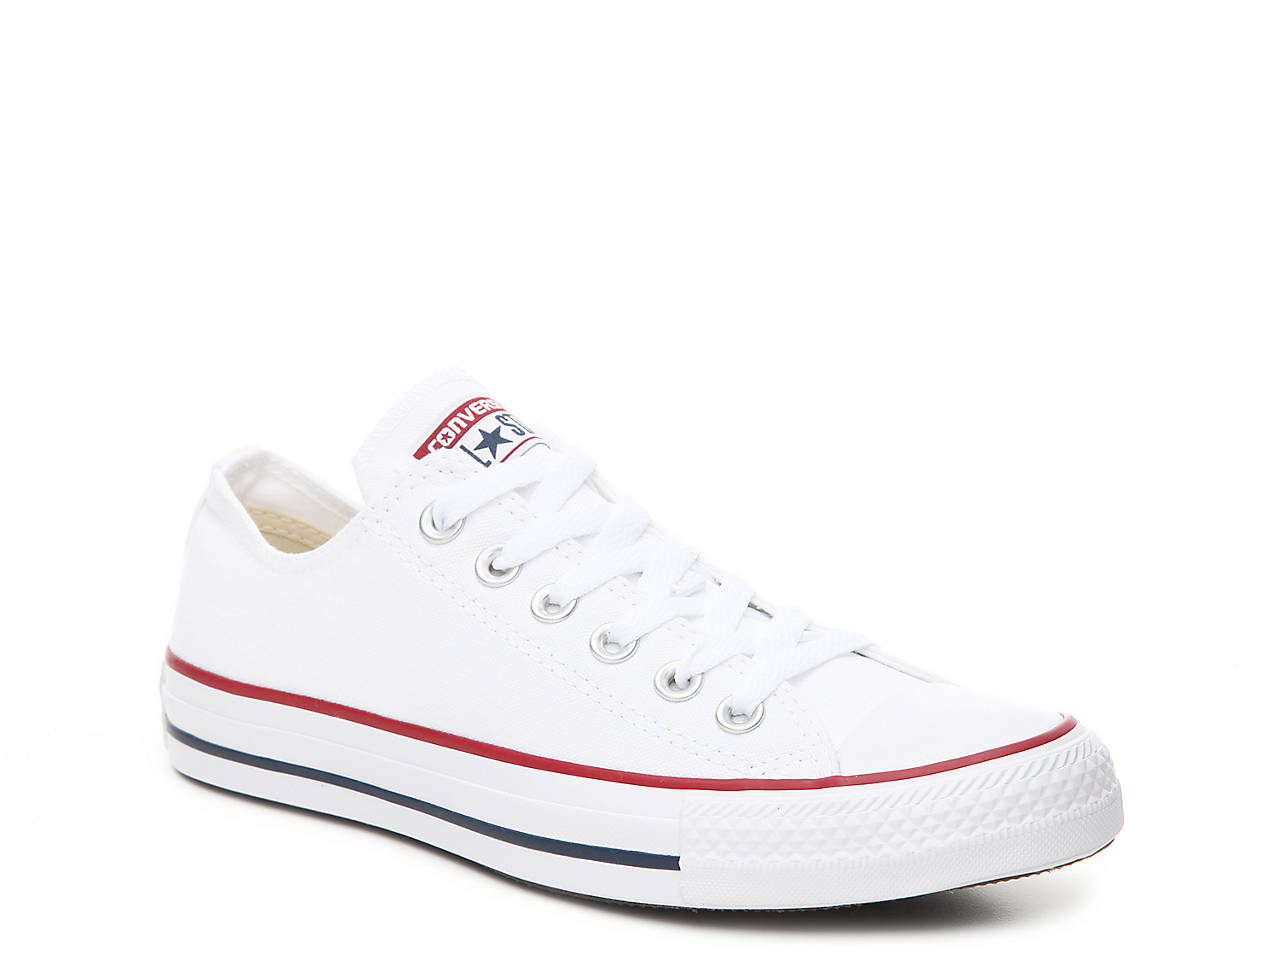 470cb91270af Converse Chuck Taylor All Star Sneaker - Women s Women s Shoes